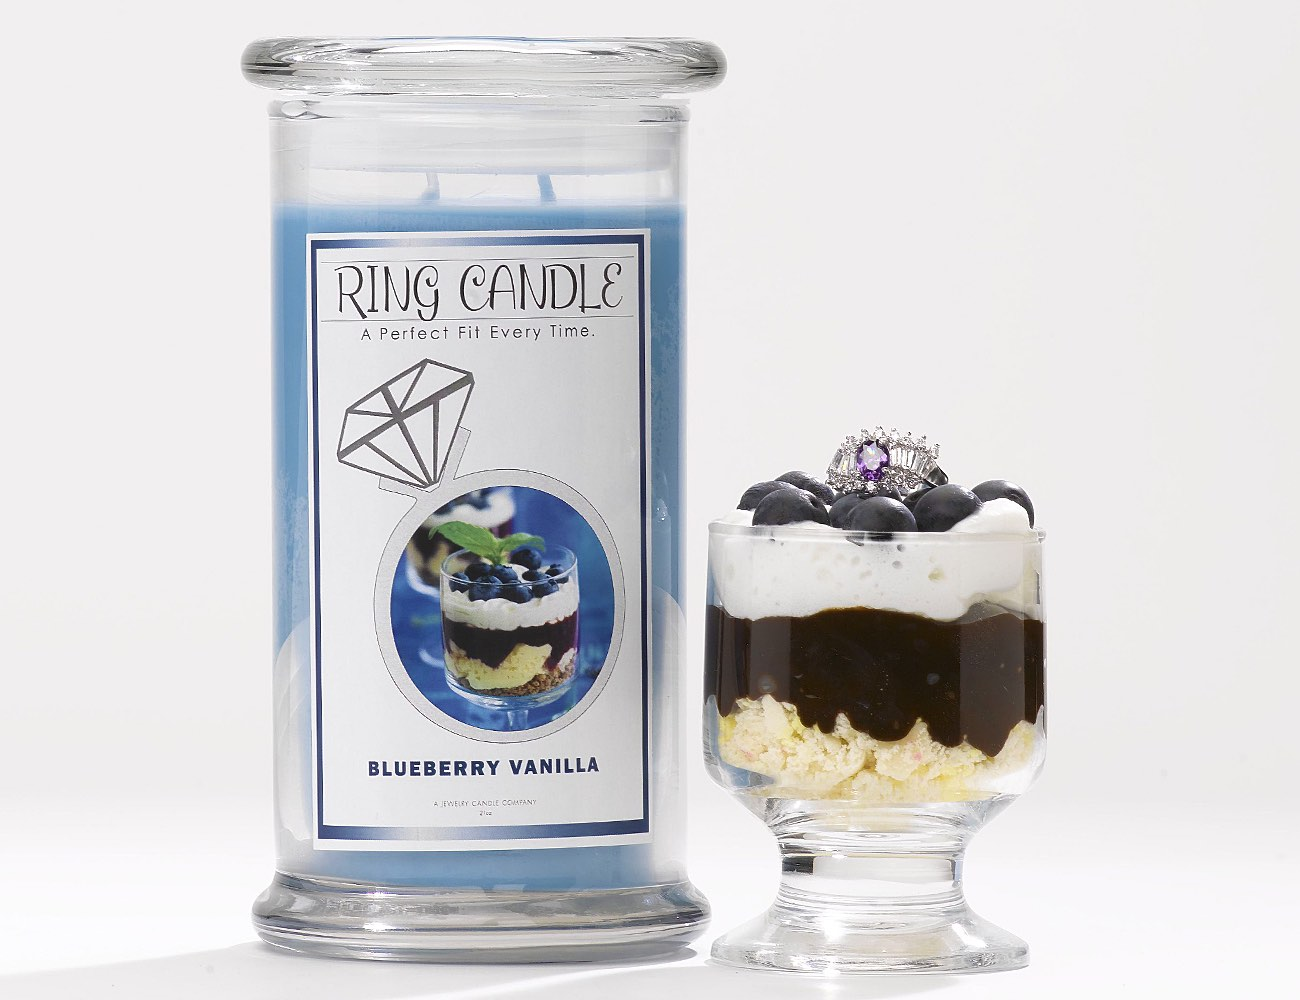 Be My Valentine Jewelry Candle – A Hidden Jewel Inside Every Candle!